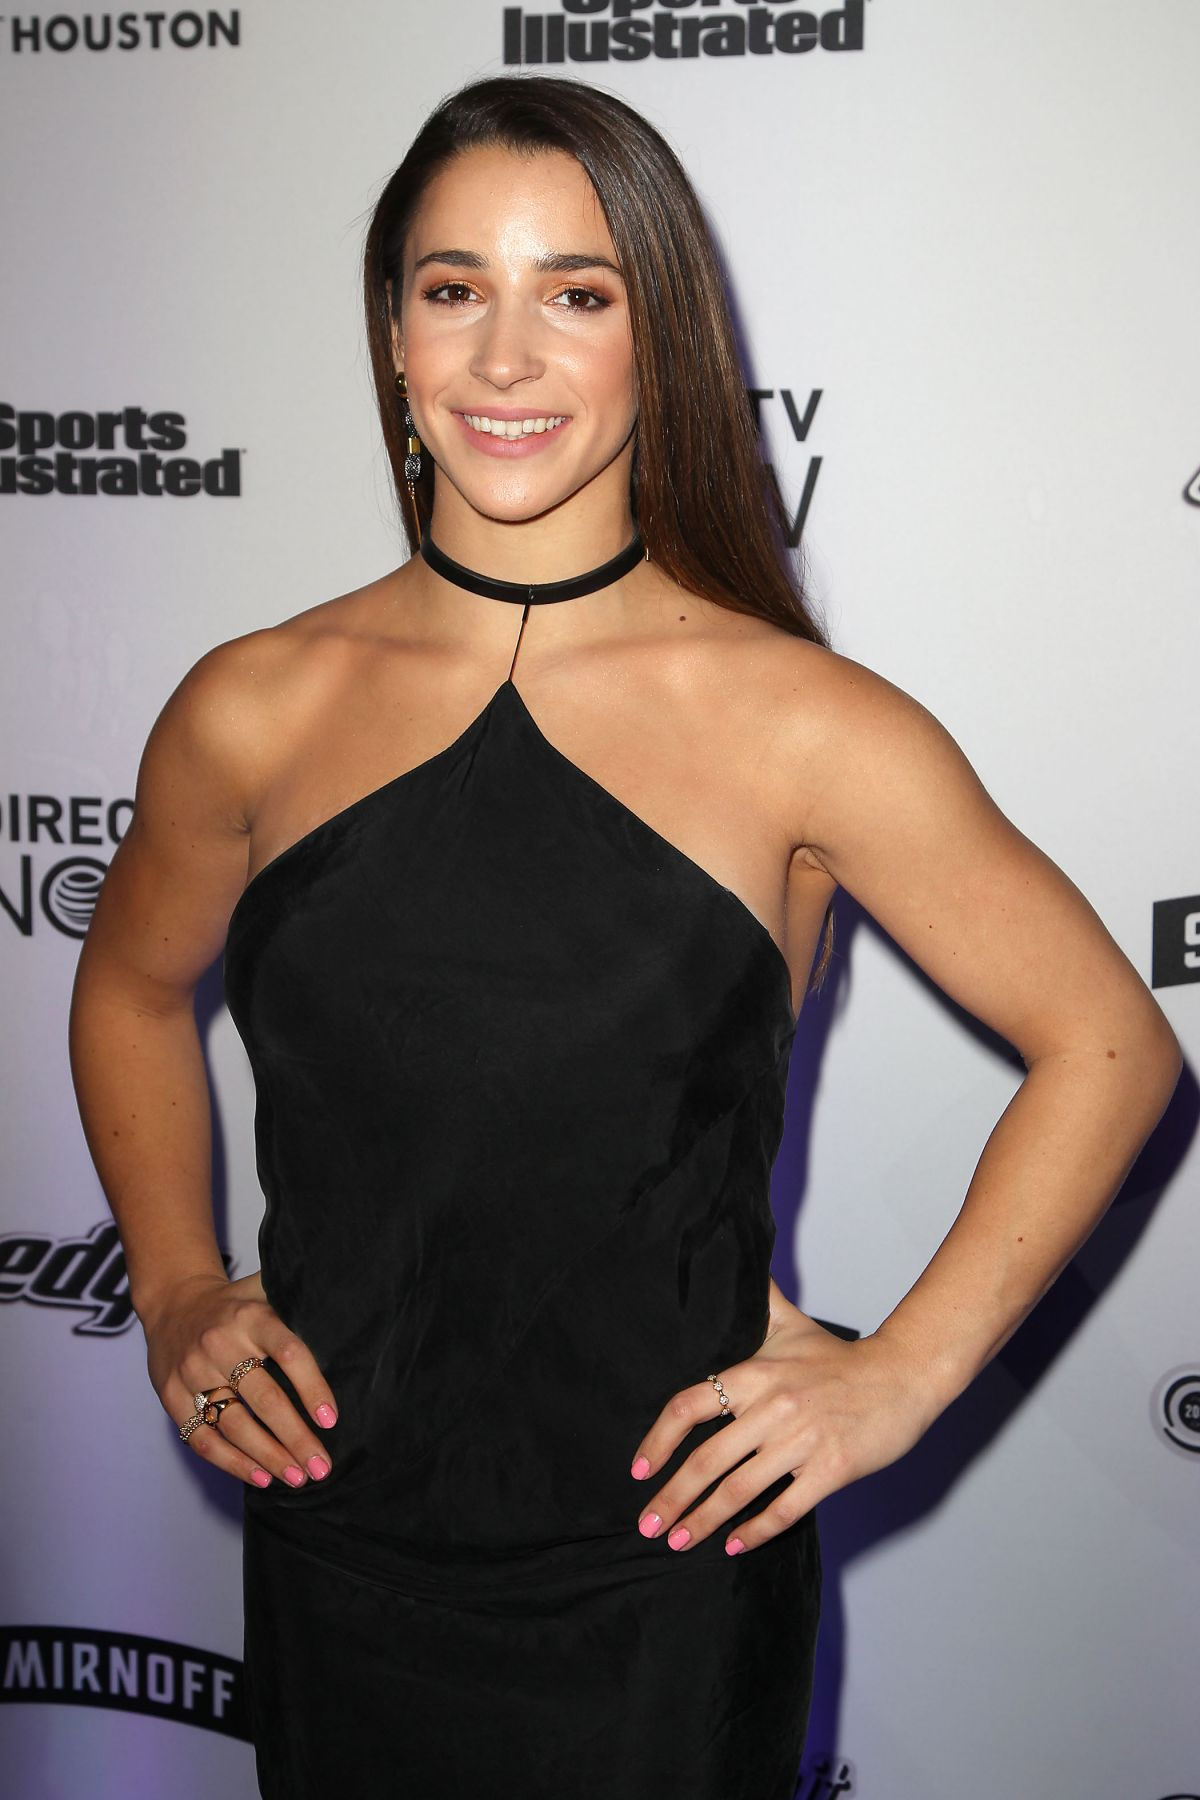 ALY RAISMAN at Sports Illustrated Swimsuit Edition Launch in New York 02/16/2017